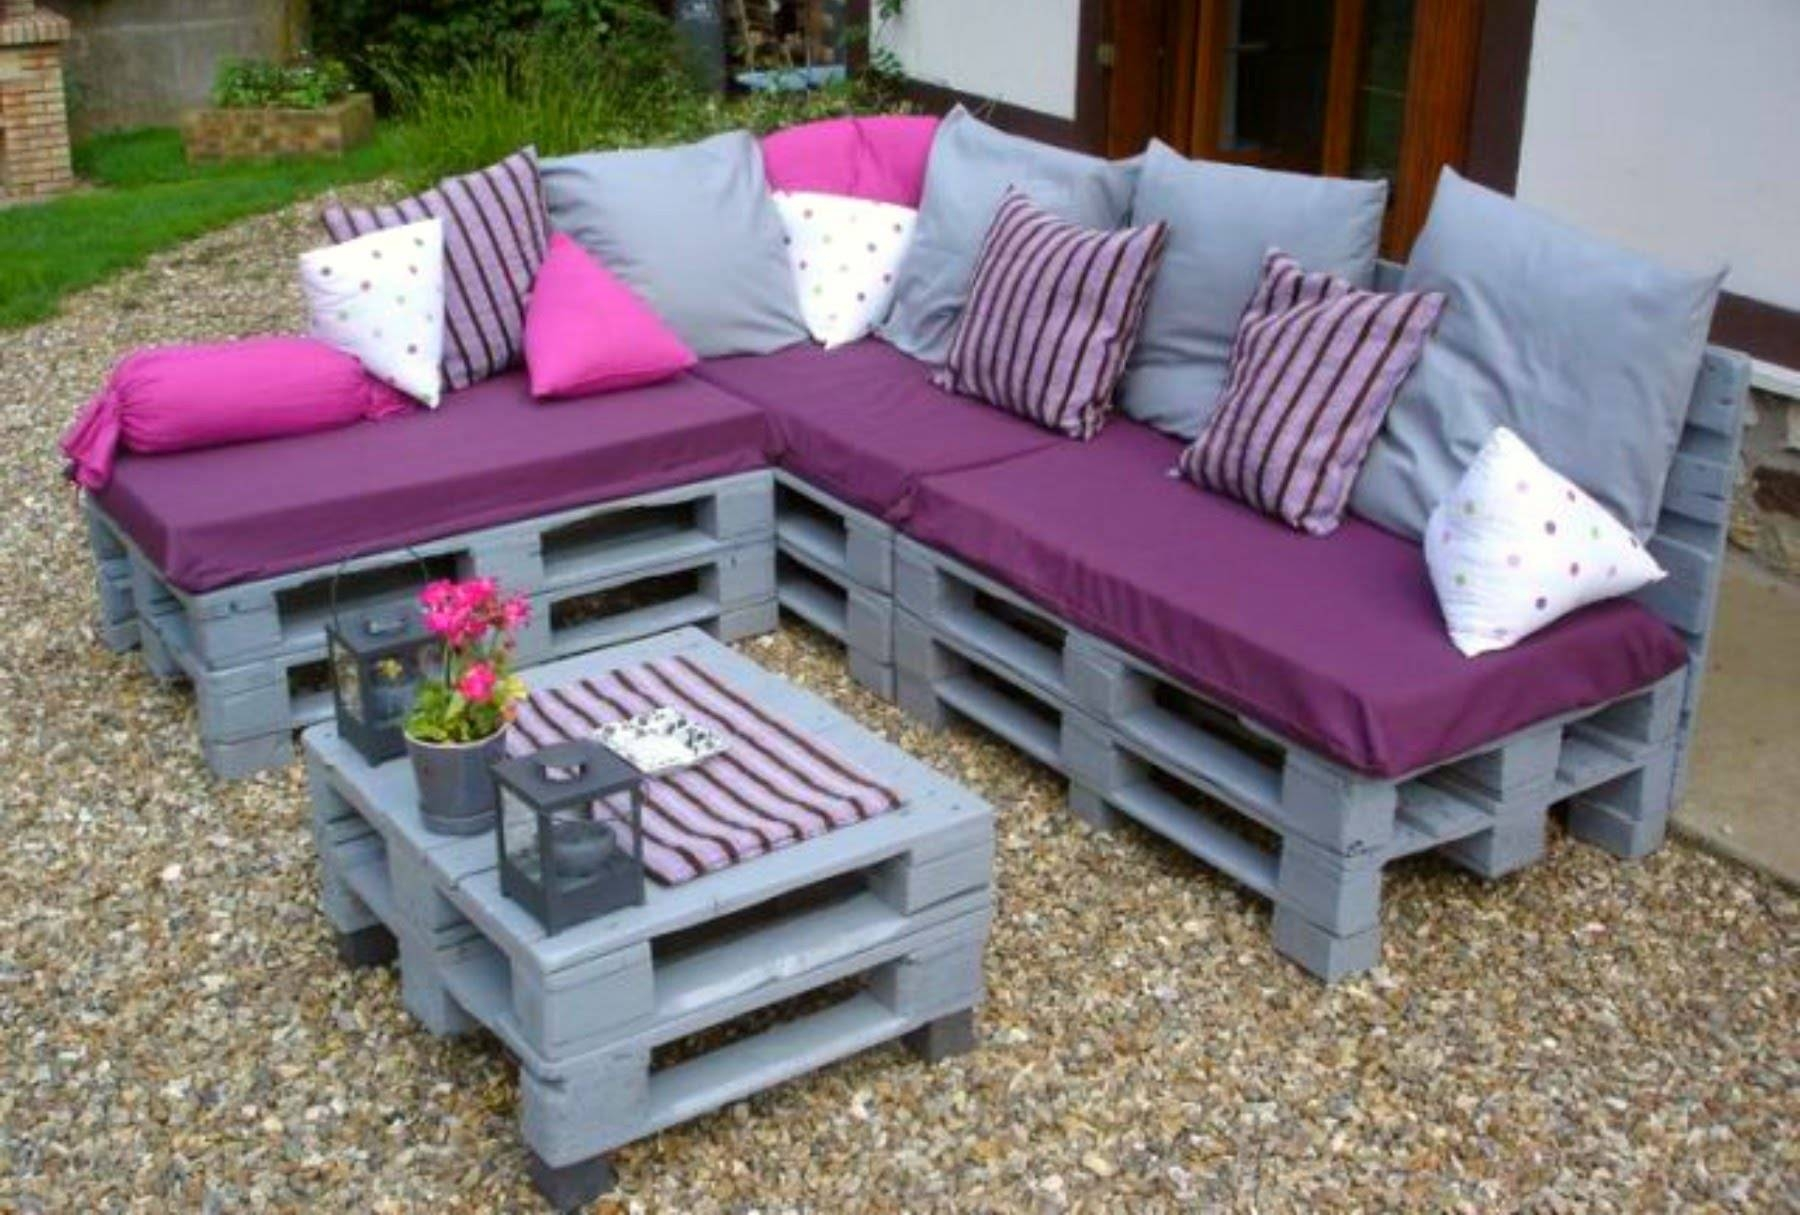 Over 50 Creative Diy Pallet Sofa Ideas 2016 - Cheap Recycled in Diy Sofa Frame (Image 20 of 30)